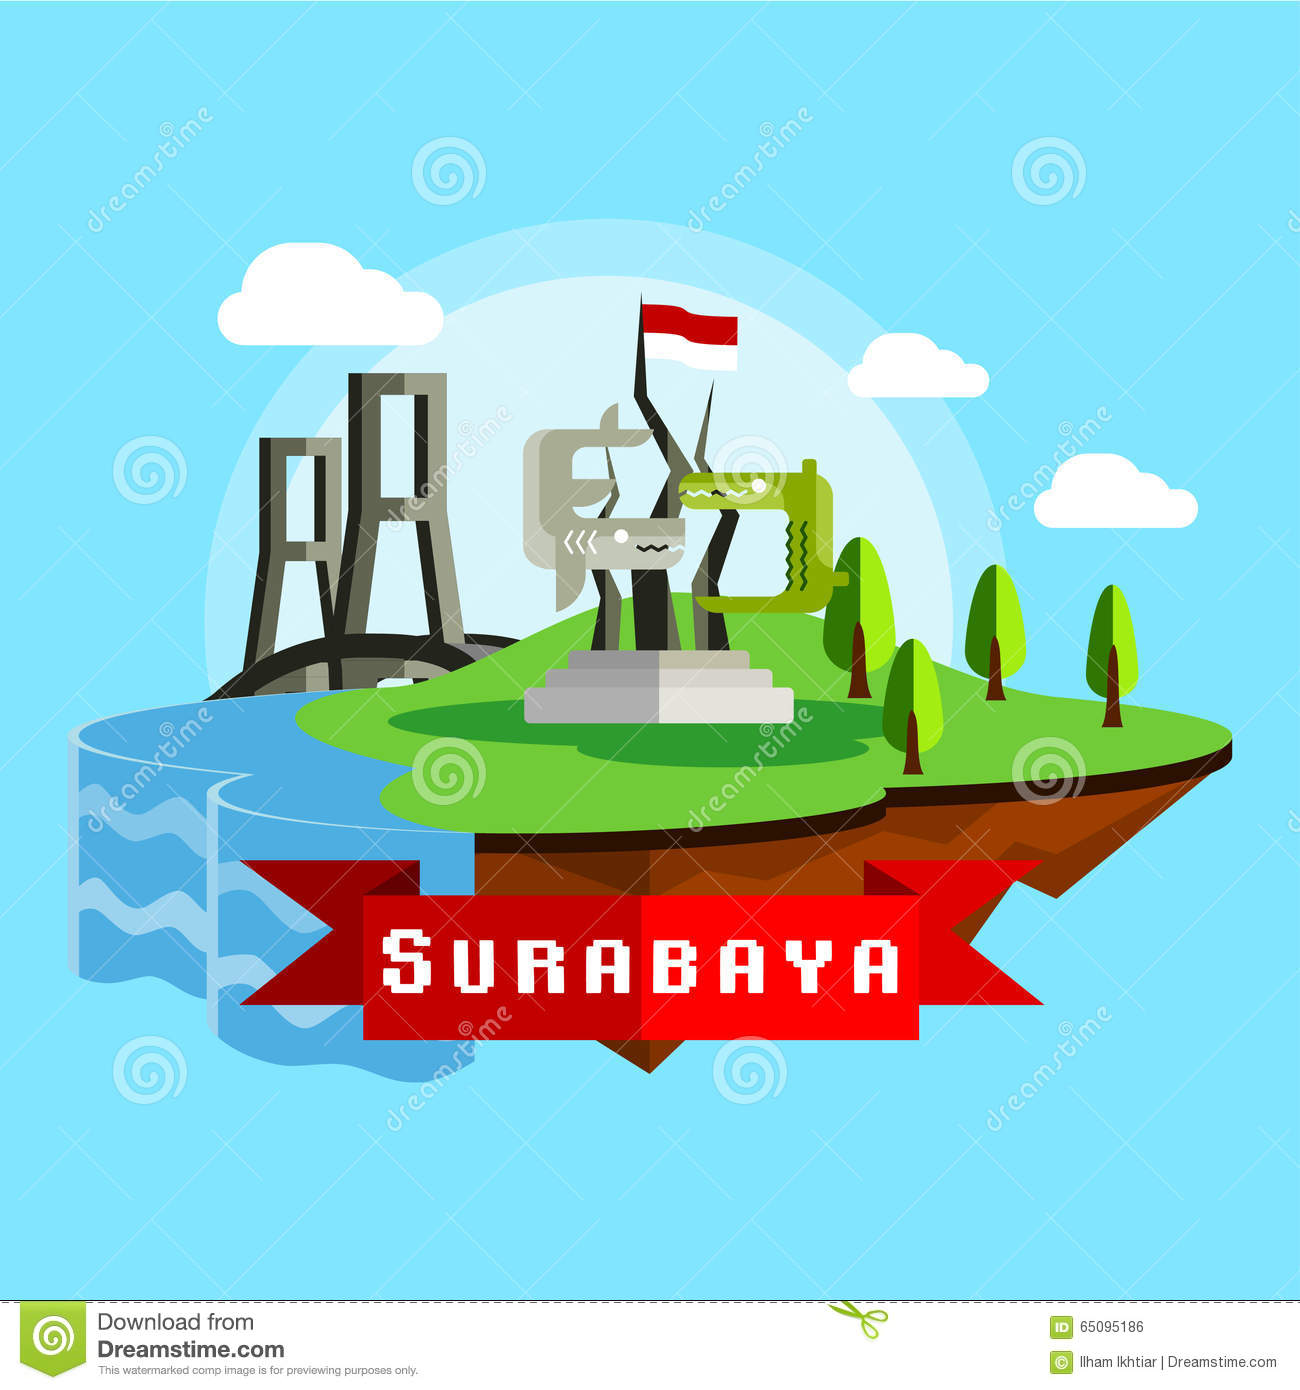 Surabaya Stock Illustrations.